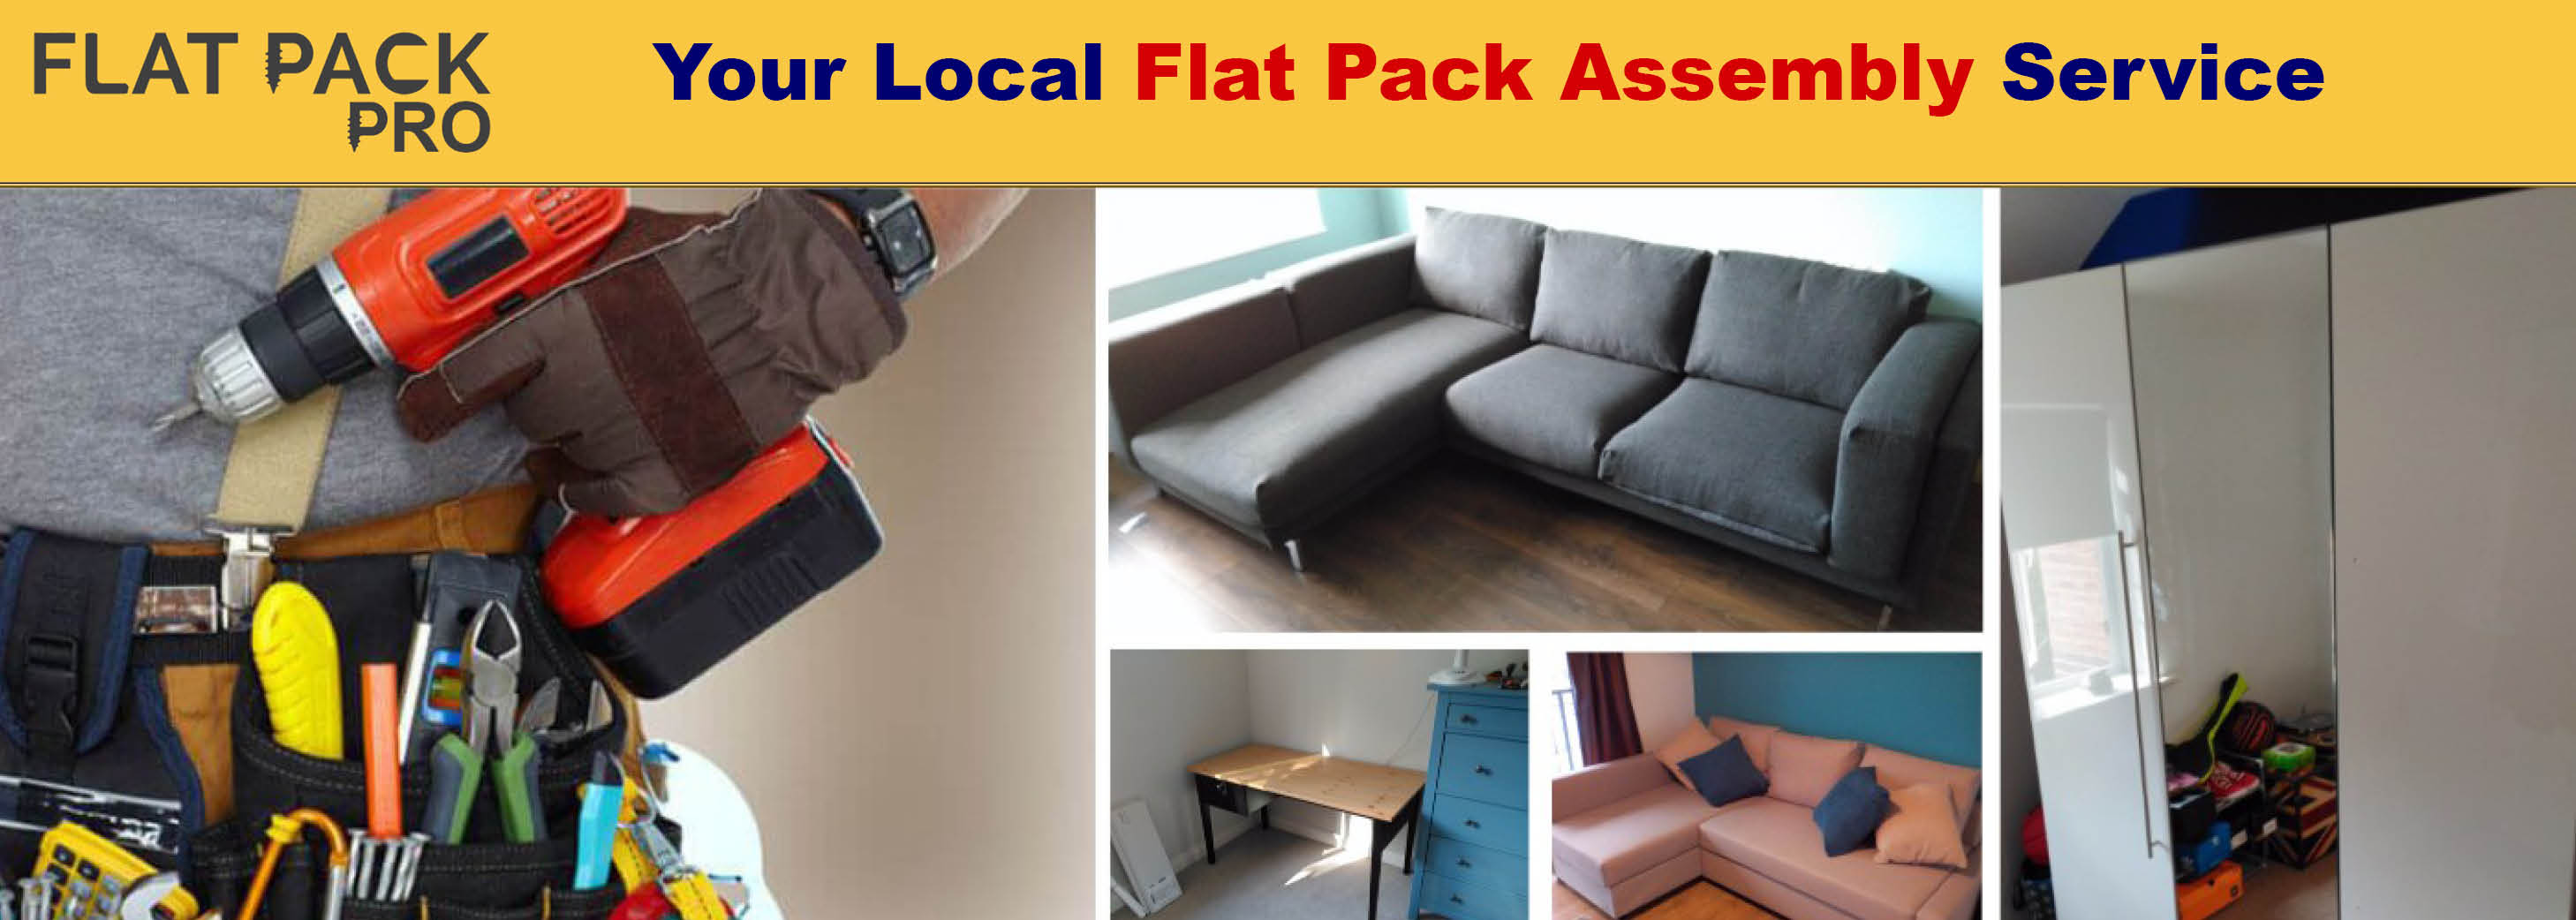 flat pack assembly near me